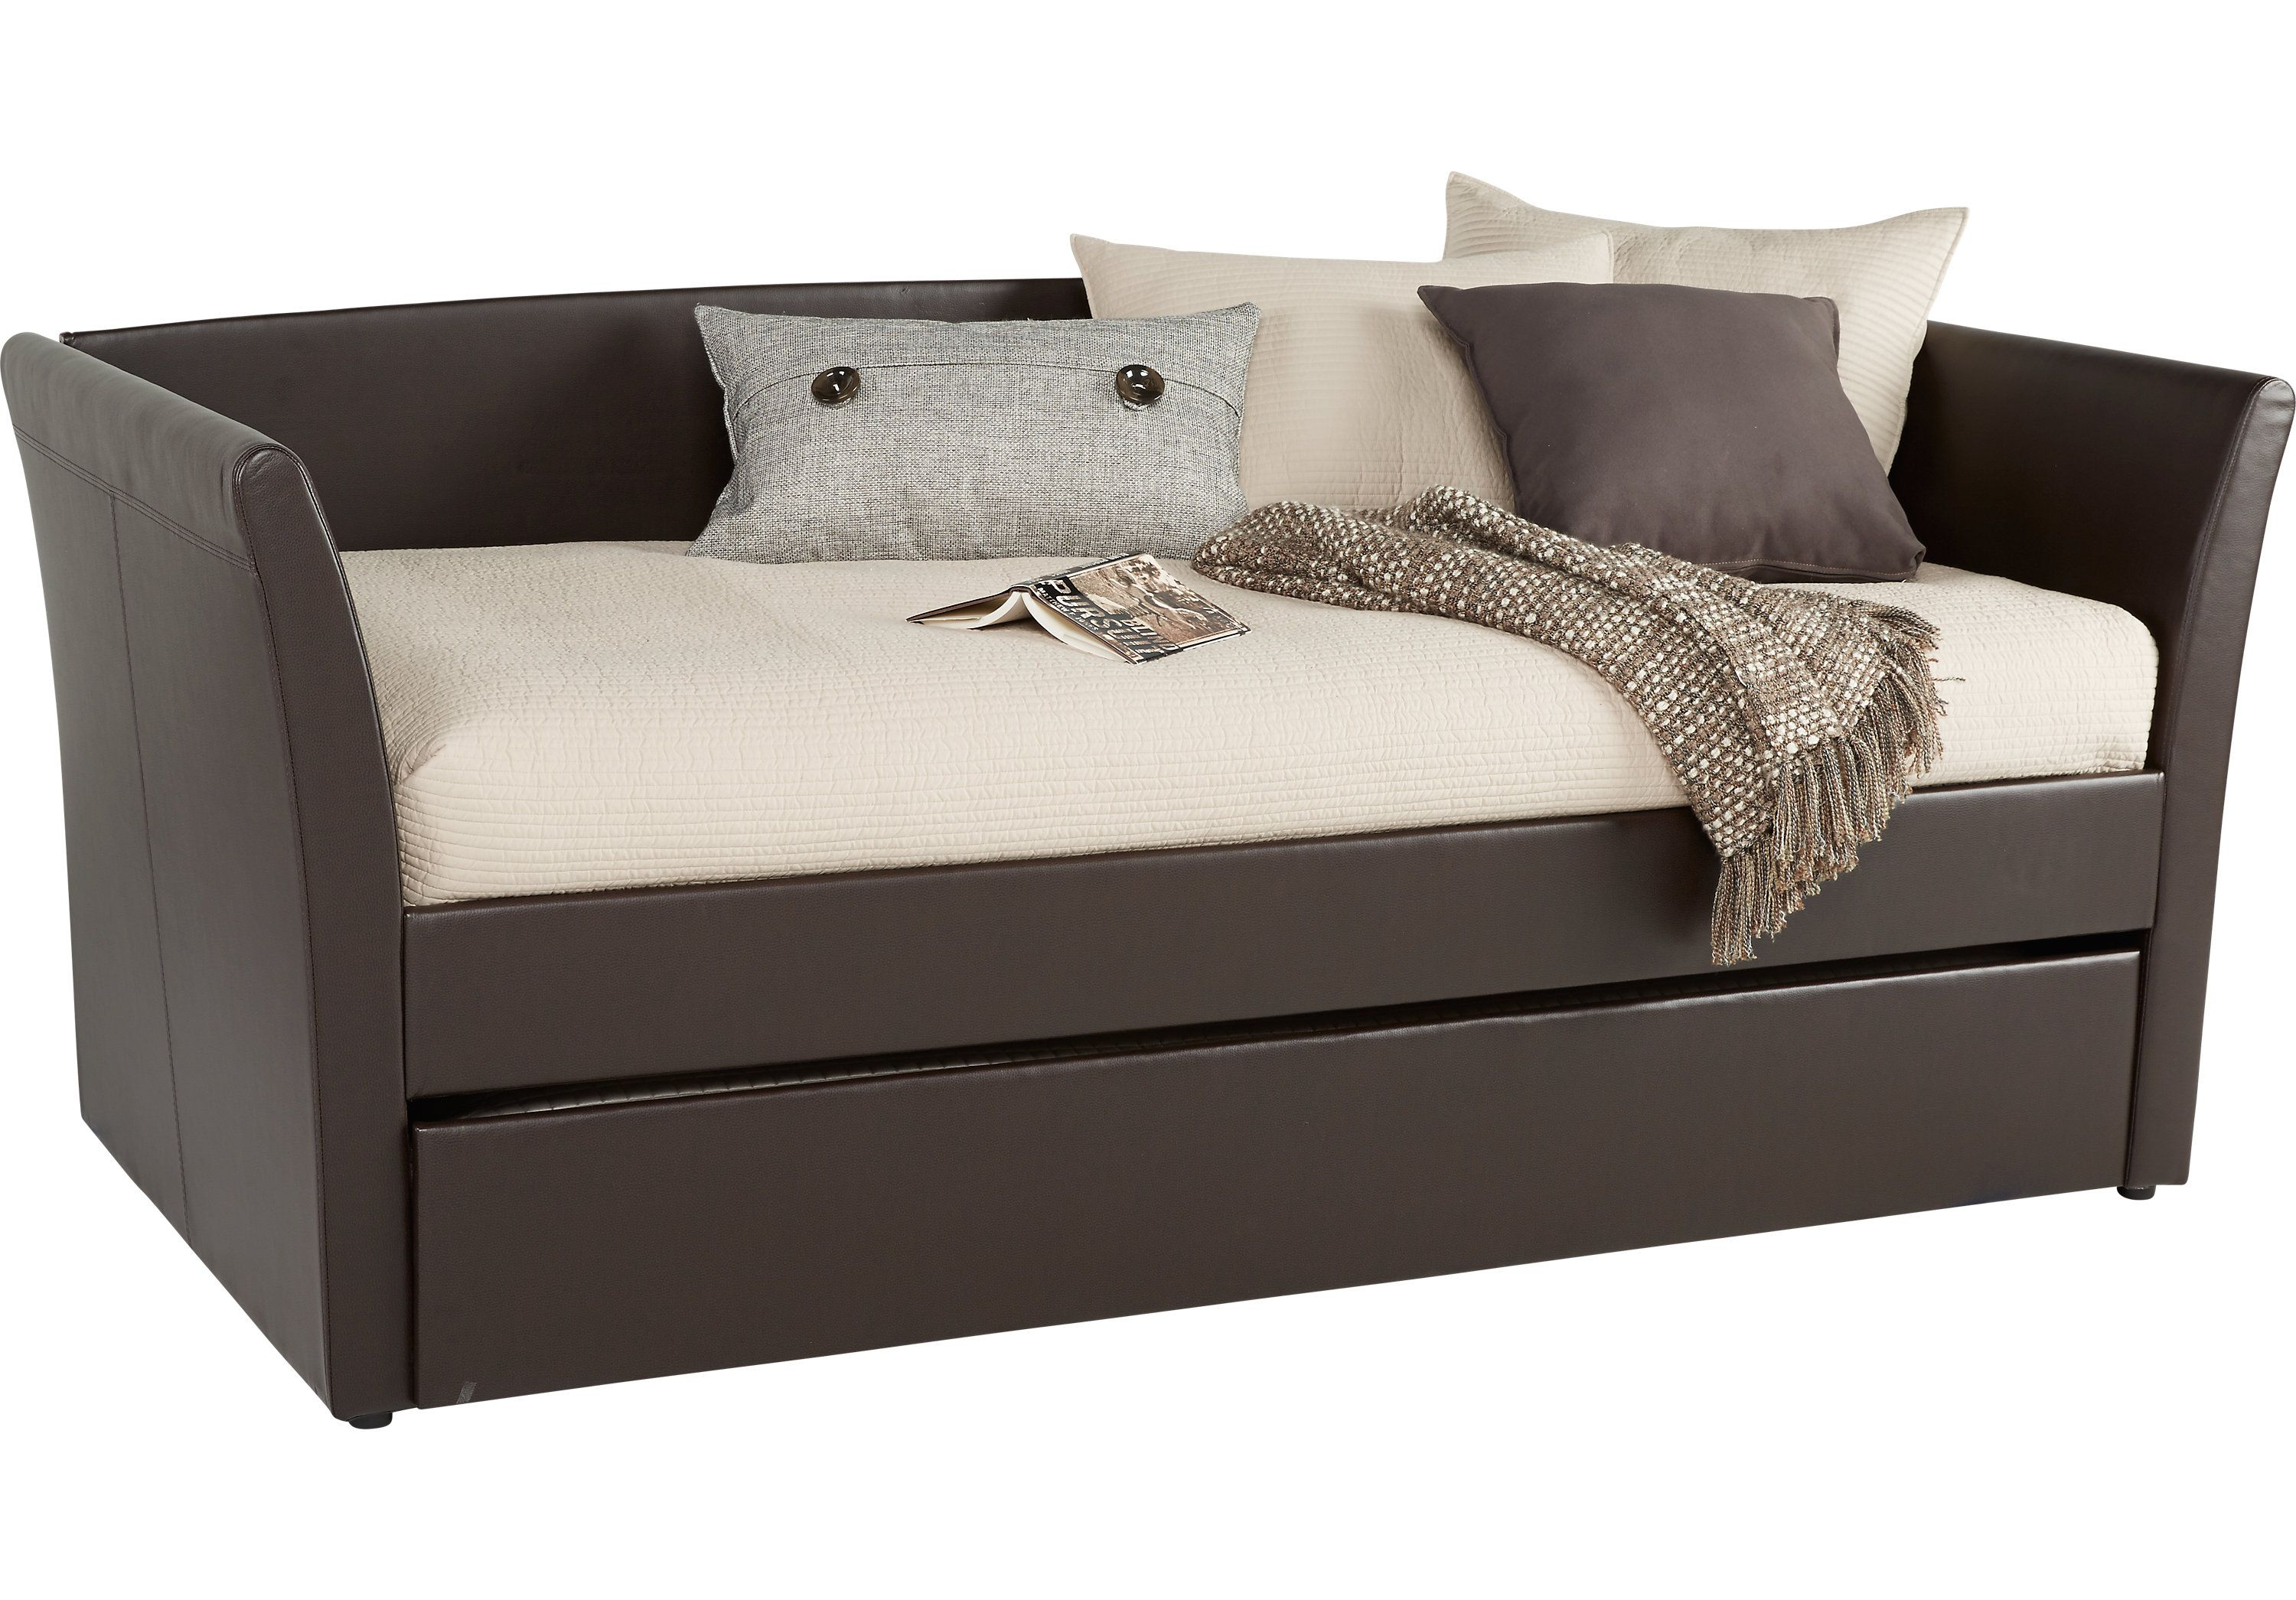 Super Brianne Brown Daybed With Trundle Daybed With Trundle Short Links Chair Design For Home Short Linksinfo